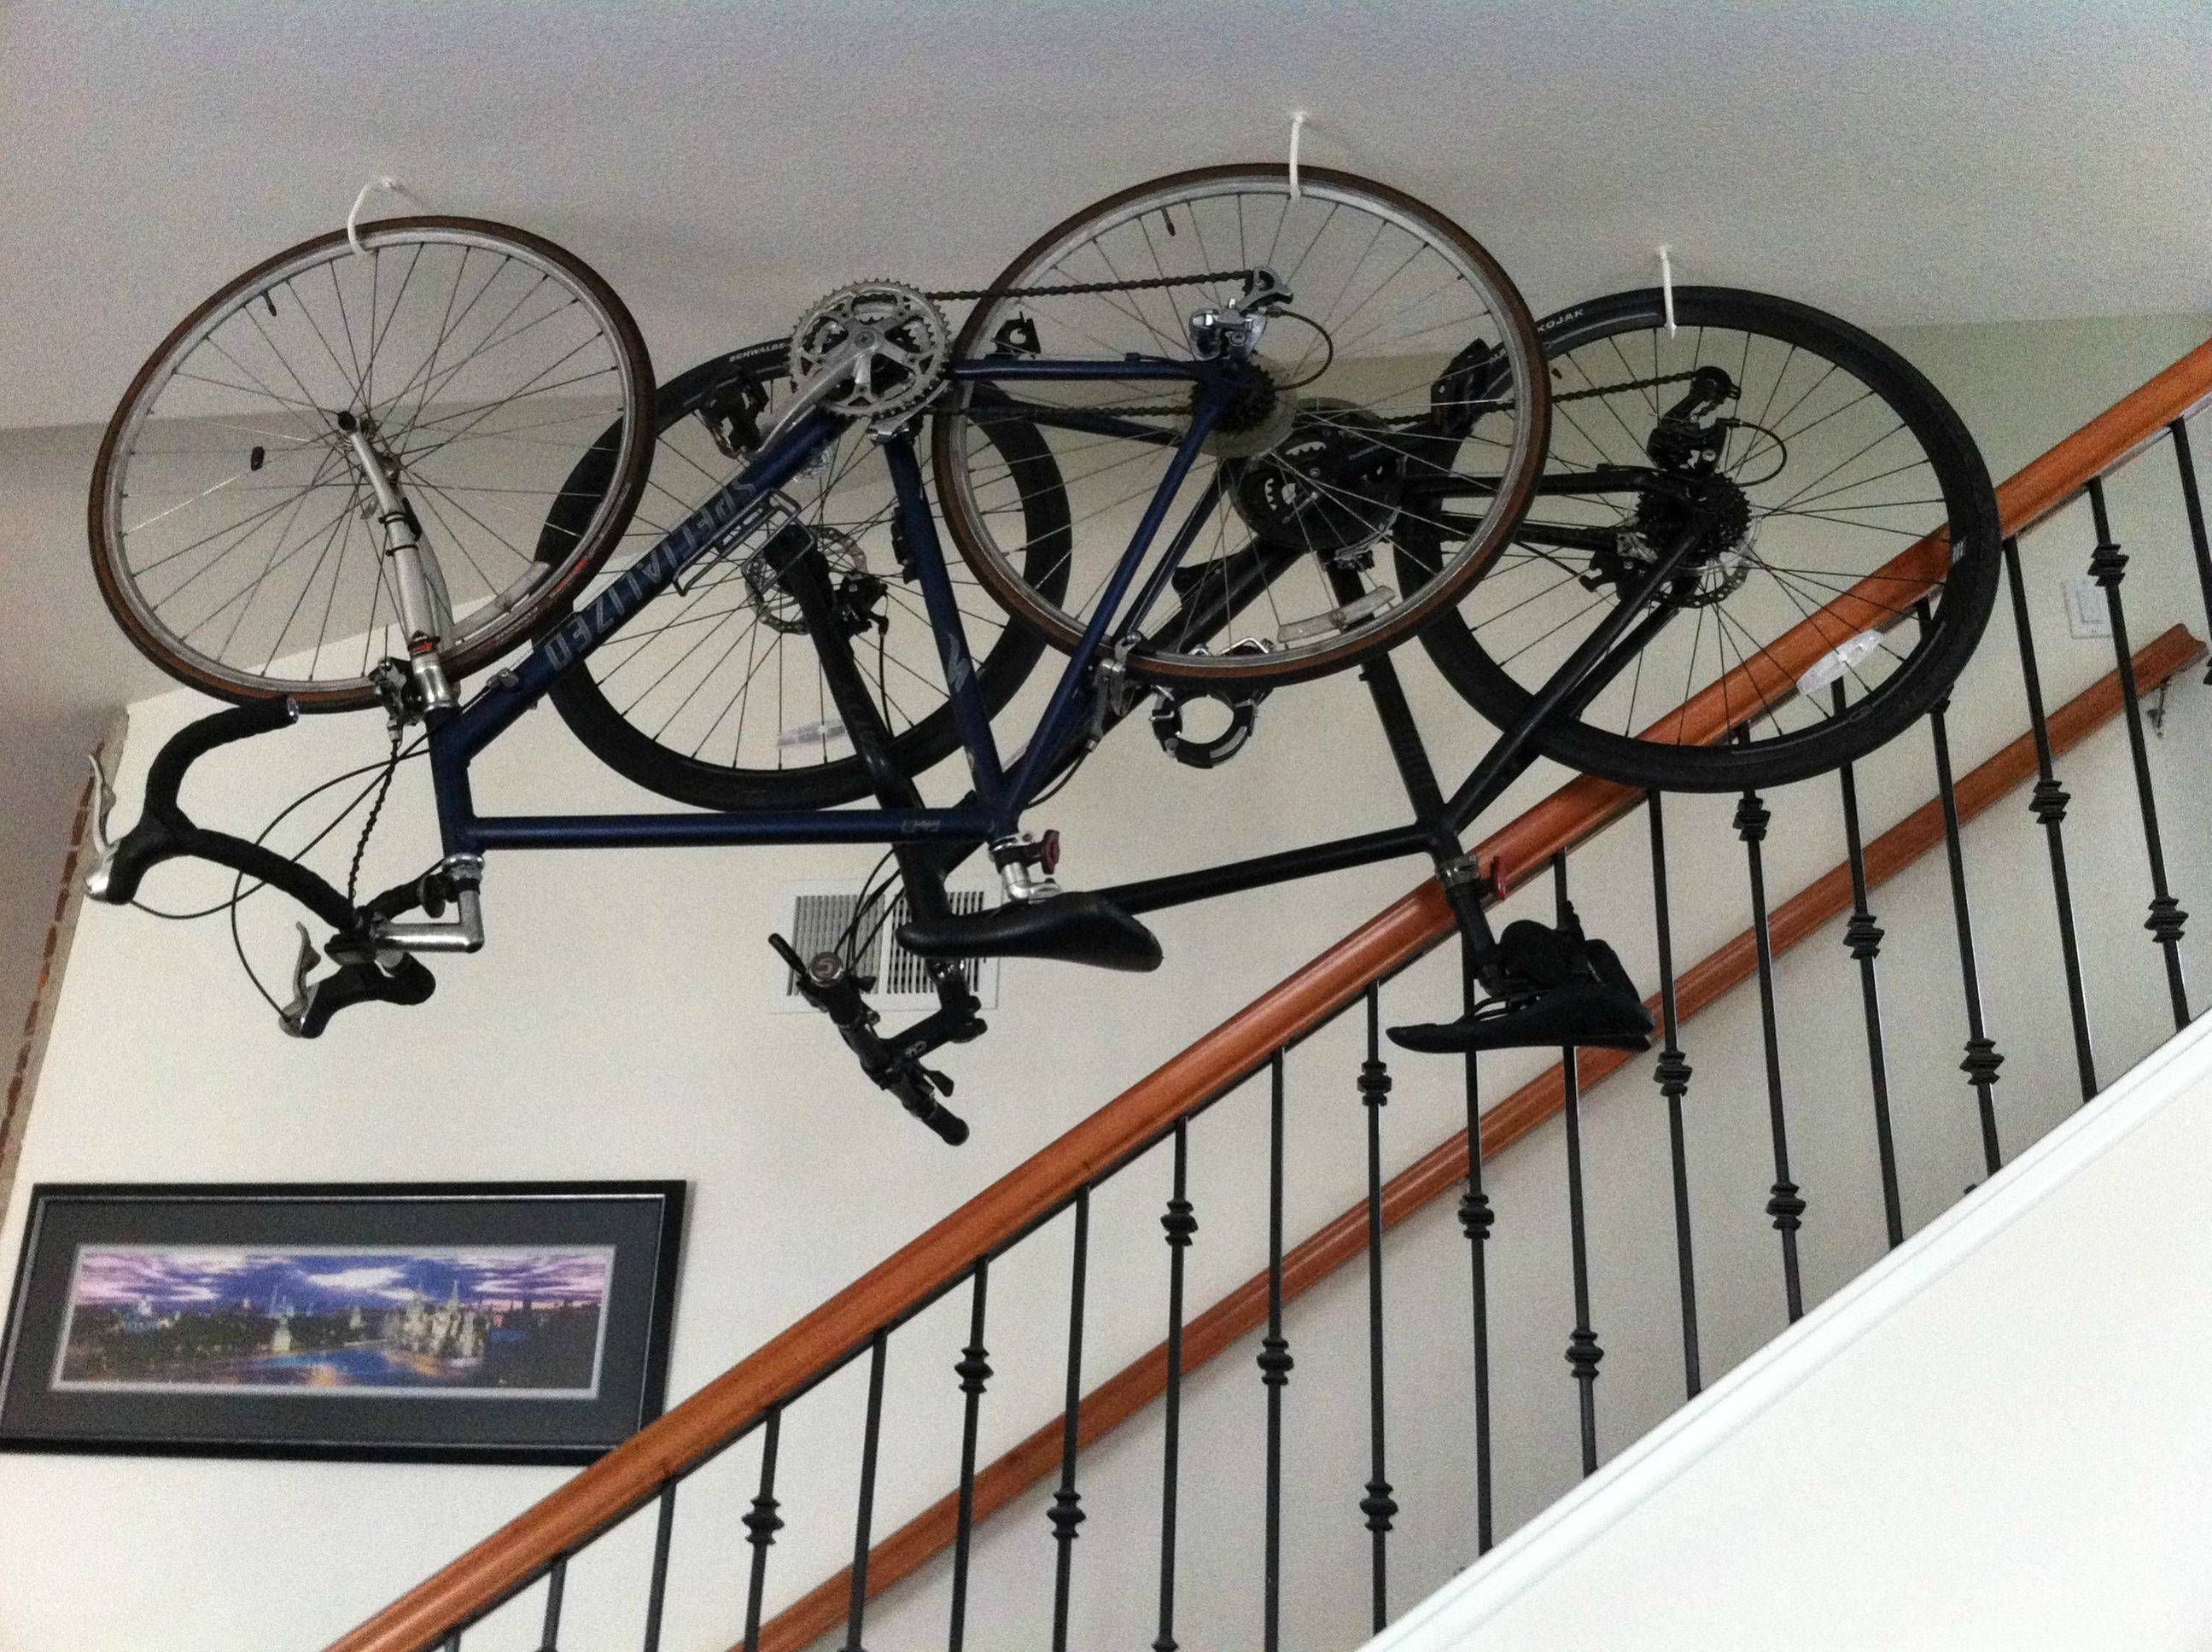 Hanging Bikes From Ceiling Apartment Google Search Bike Hanger For Garage Bike Wall Storage Bike Storage Garage